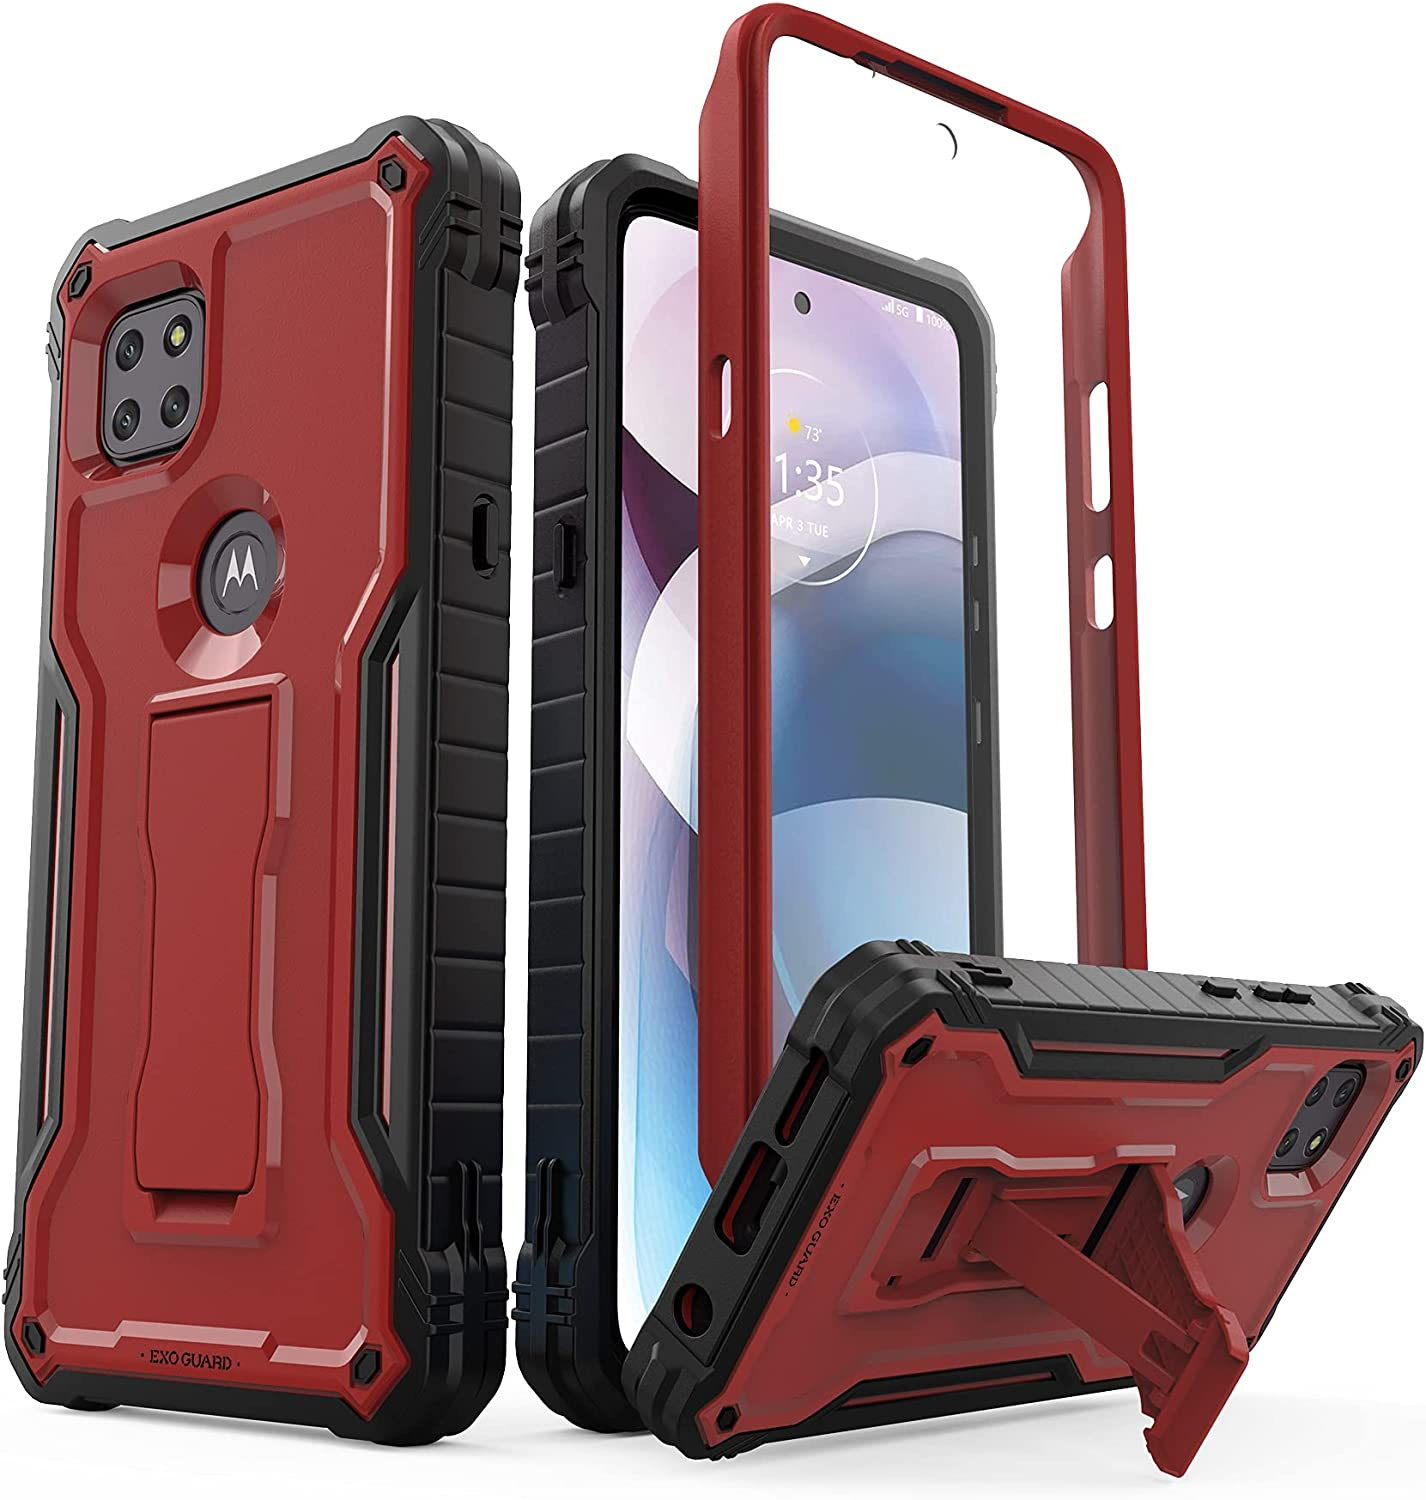 ExoGuard for Motorola One 5G Ace Case, Rubber Shockproof Full-Body Cover Case Built-in Screen Protector and Kickstand Compatible with Moto One 5G Ace Phone (Red)